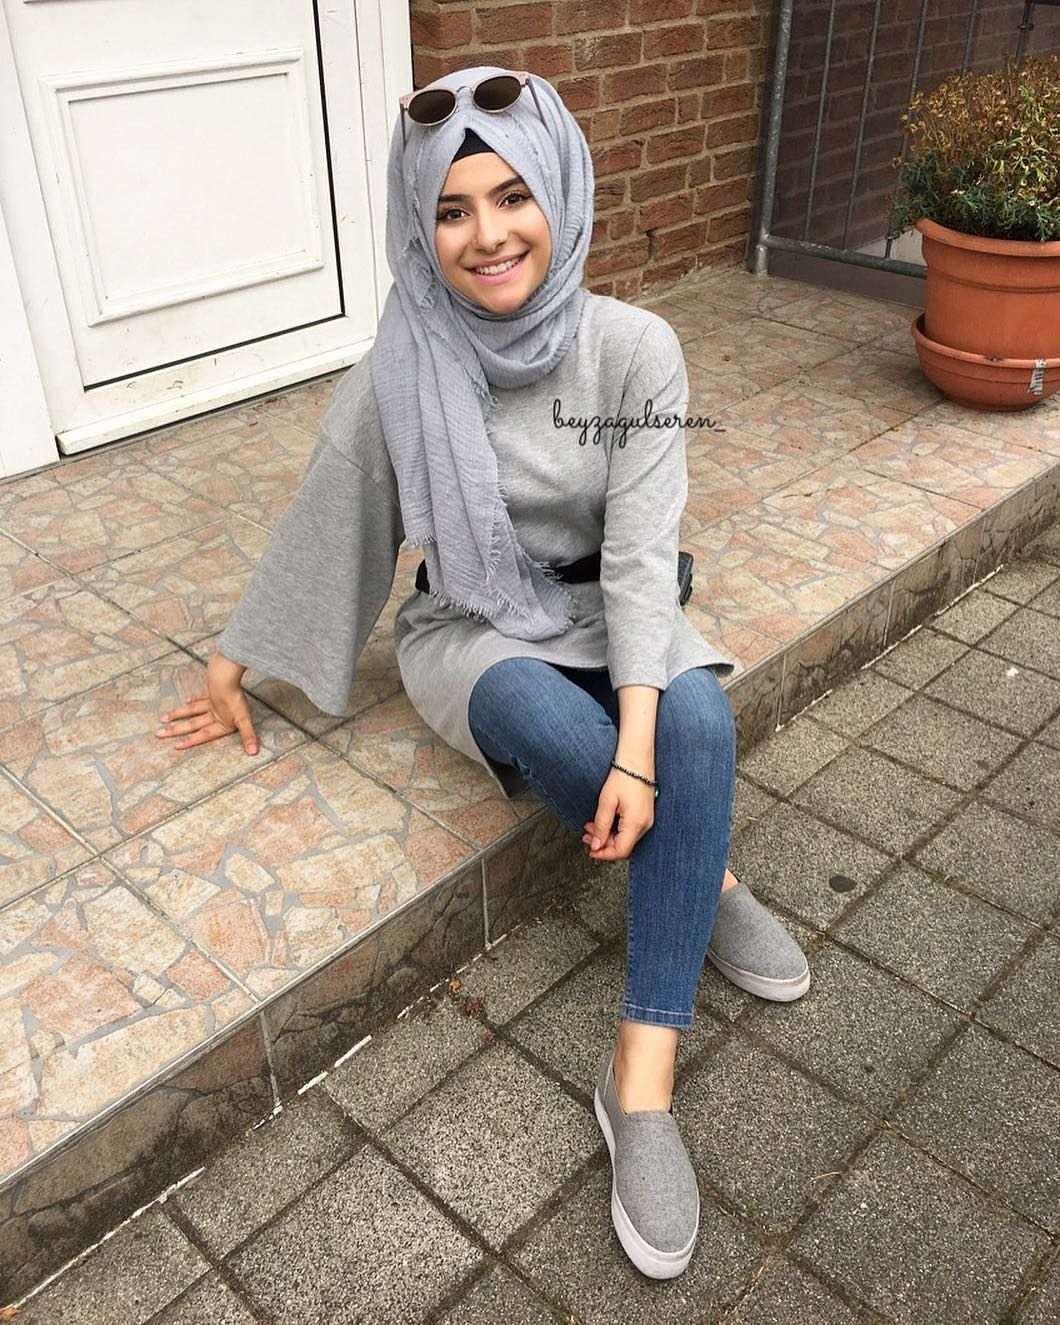 0 Takipci 1 266 Takip Edilen 0 Gonderi Basortulu Kizlar Basortusu Giyimi Basortulu Giyimler Basortulu Kadin Giyim Modest Fashion Hijab Fashion Hijab Dress